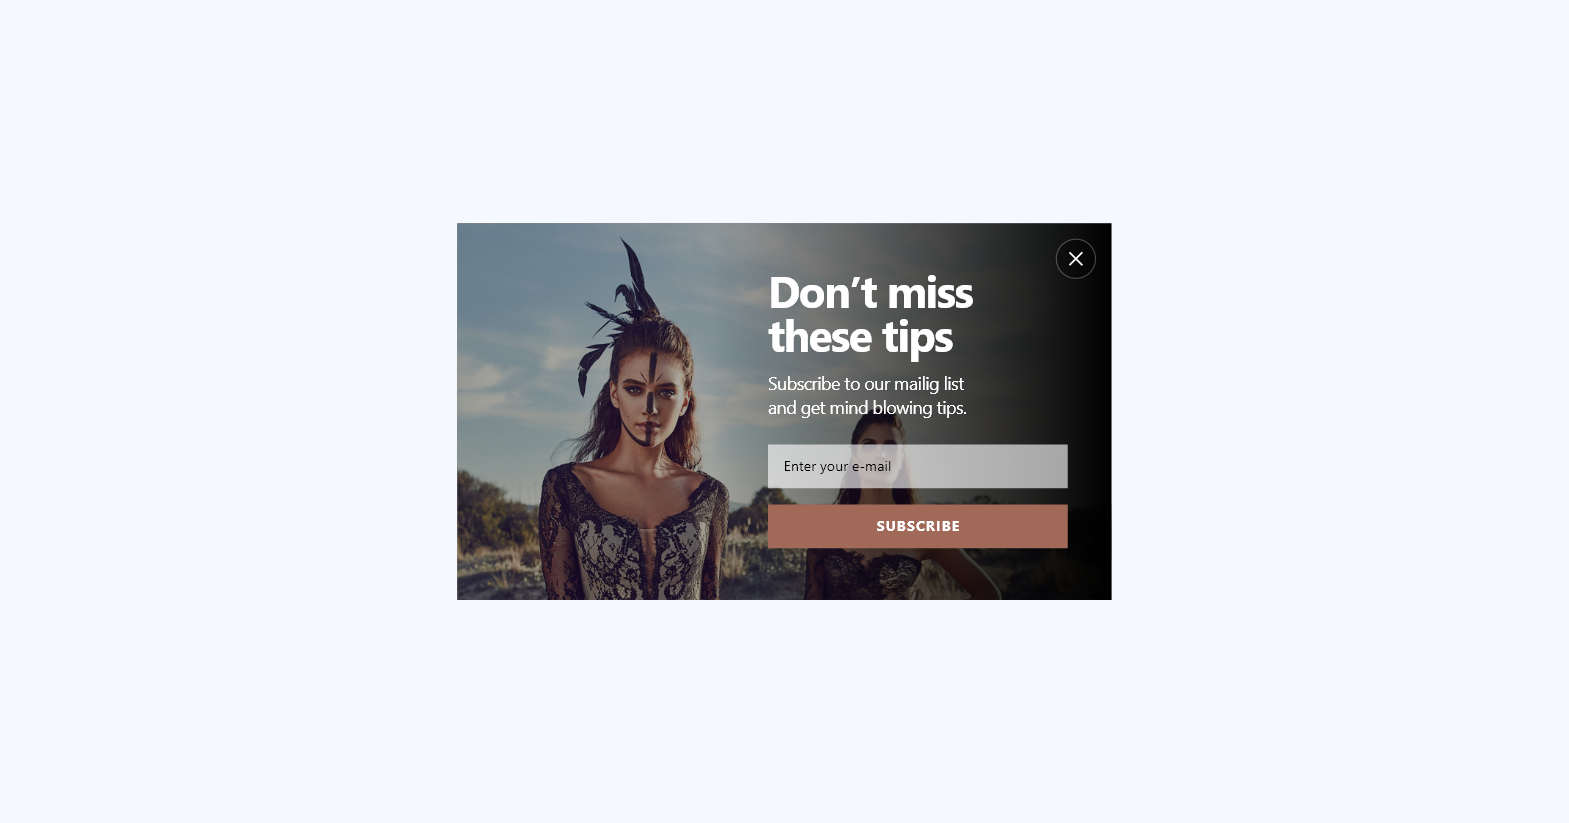 popupsmart content do not miss these tips middle popup design